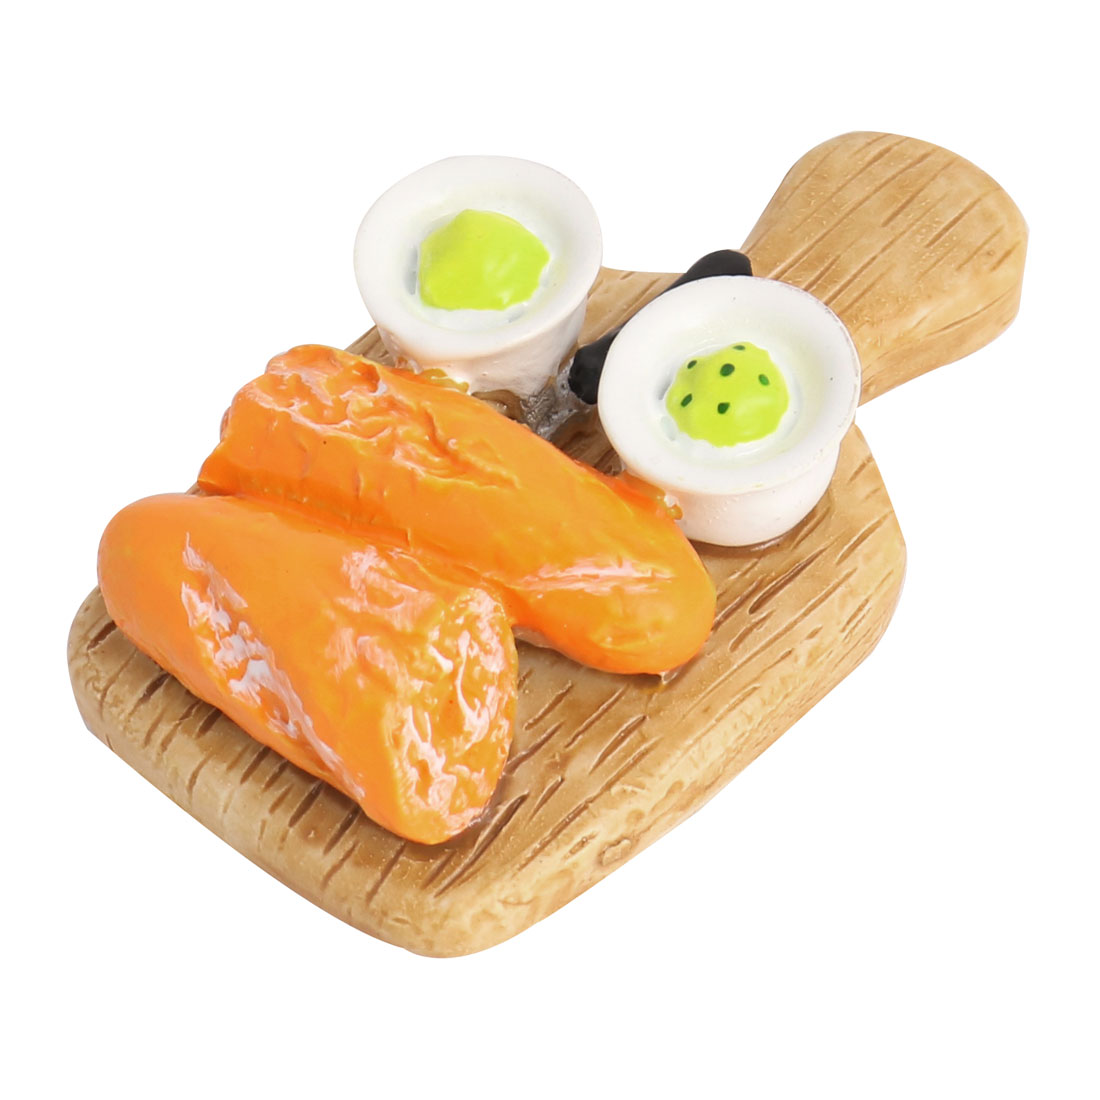 Home Fridge Resin Simulation Chopping Board Baguette Decorative Magnet Sticker